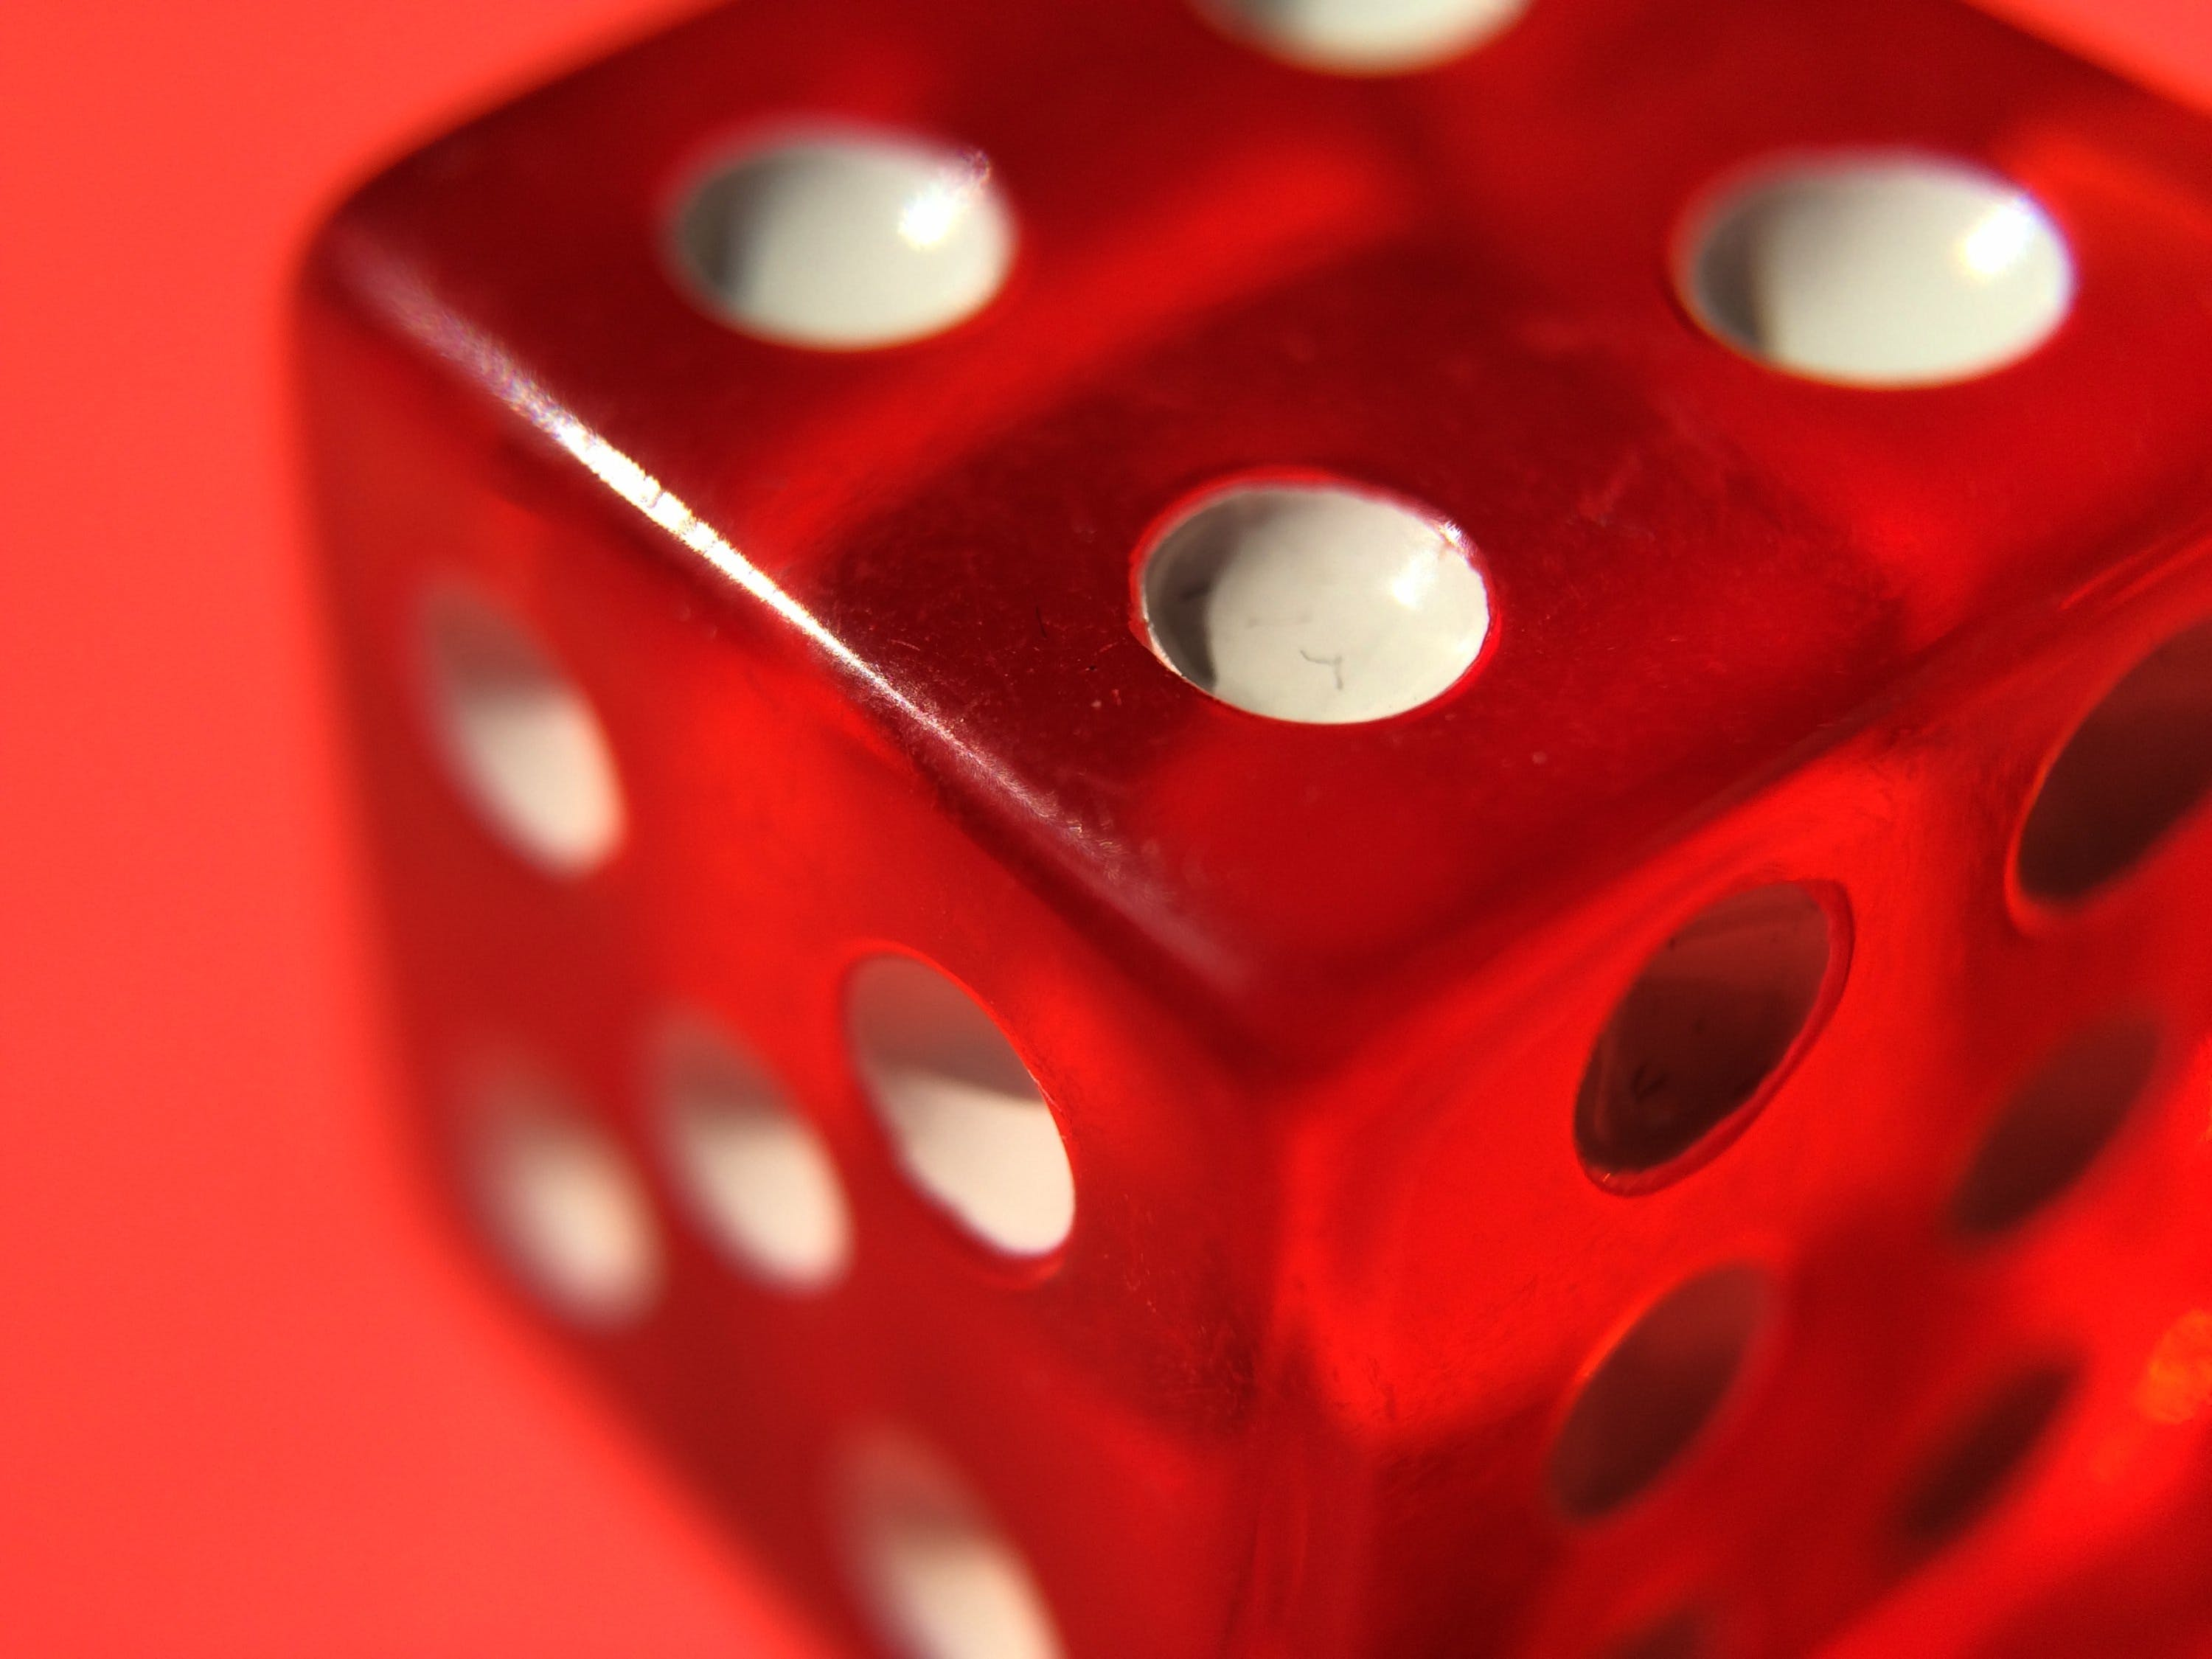 Free stock photo of red, game, dice, dots